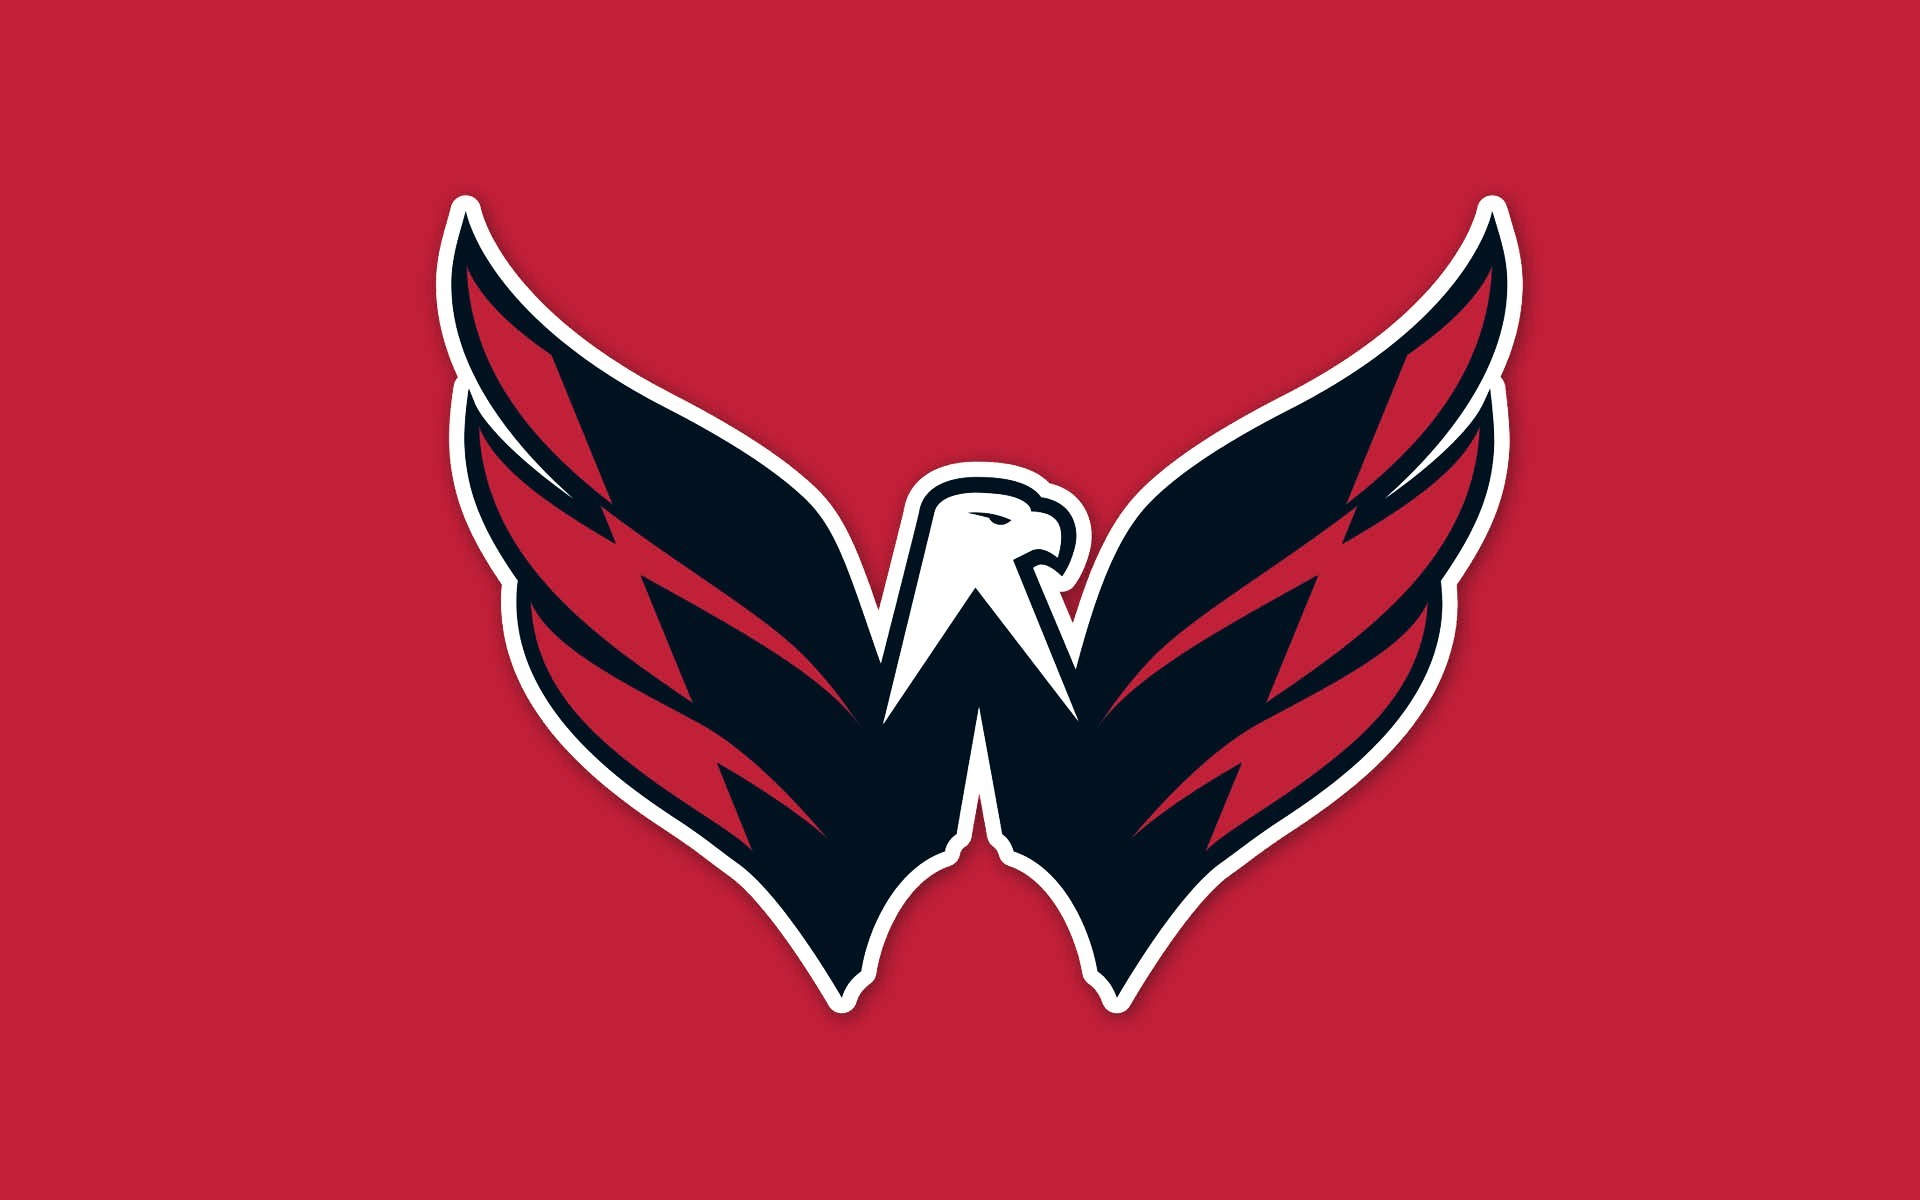 1920x1200 Download now: Washington Capitals Logo HD Wallpaper. Read description .